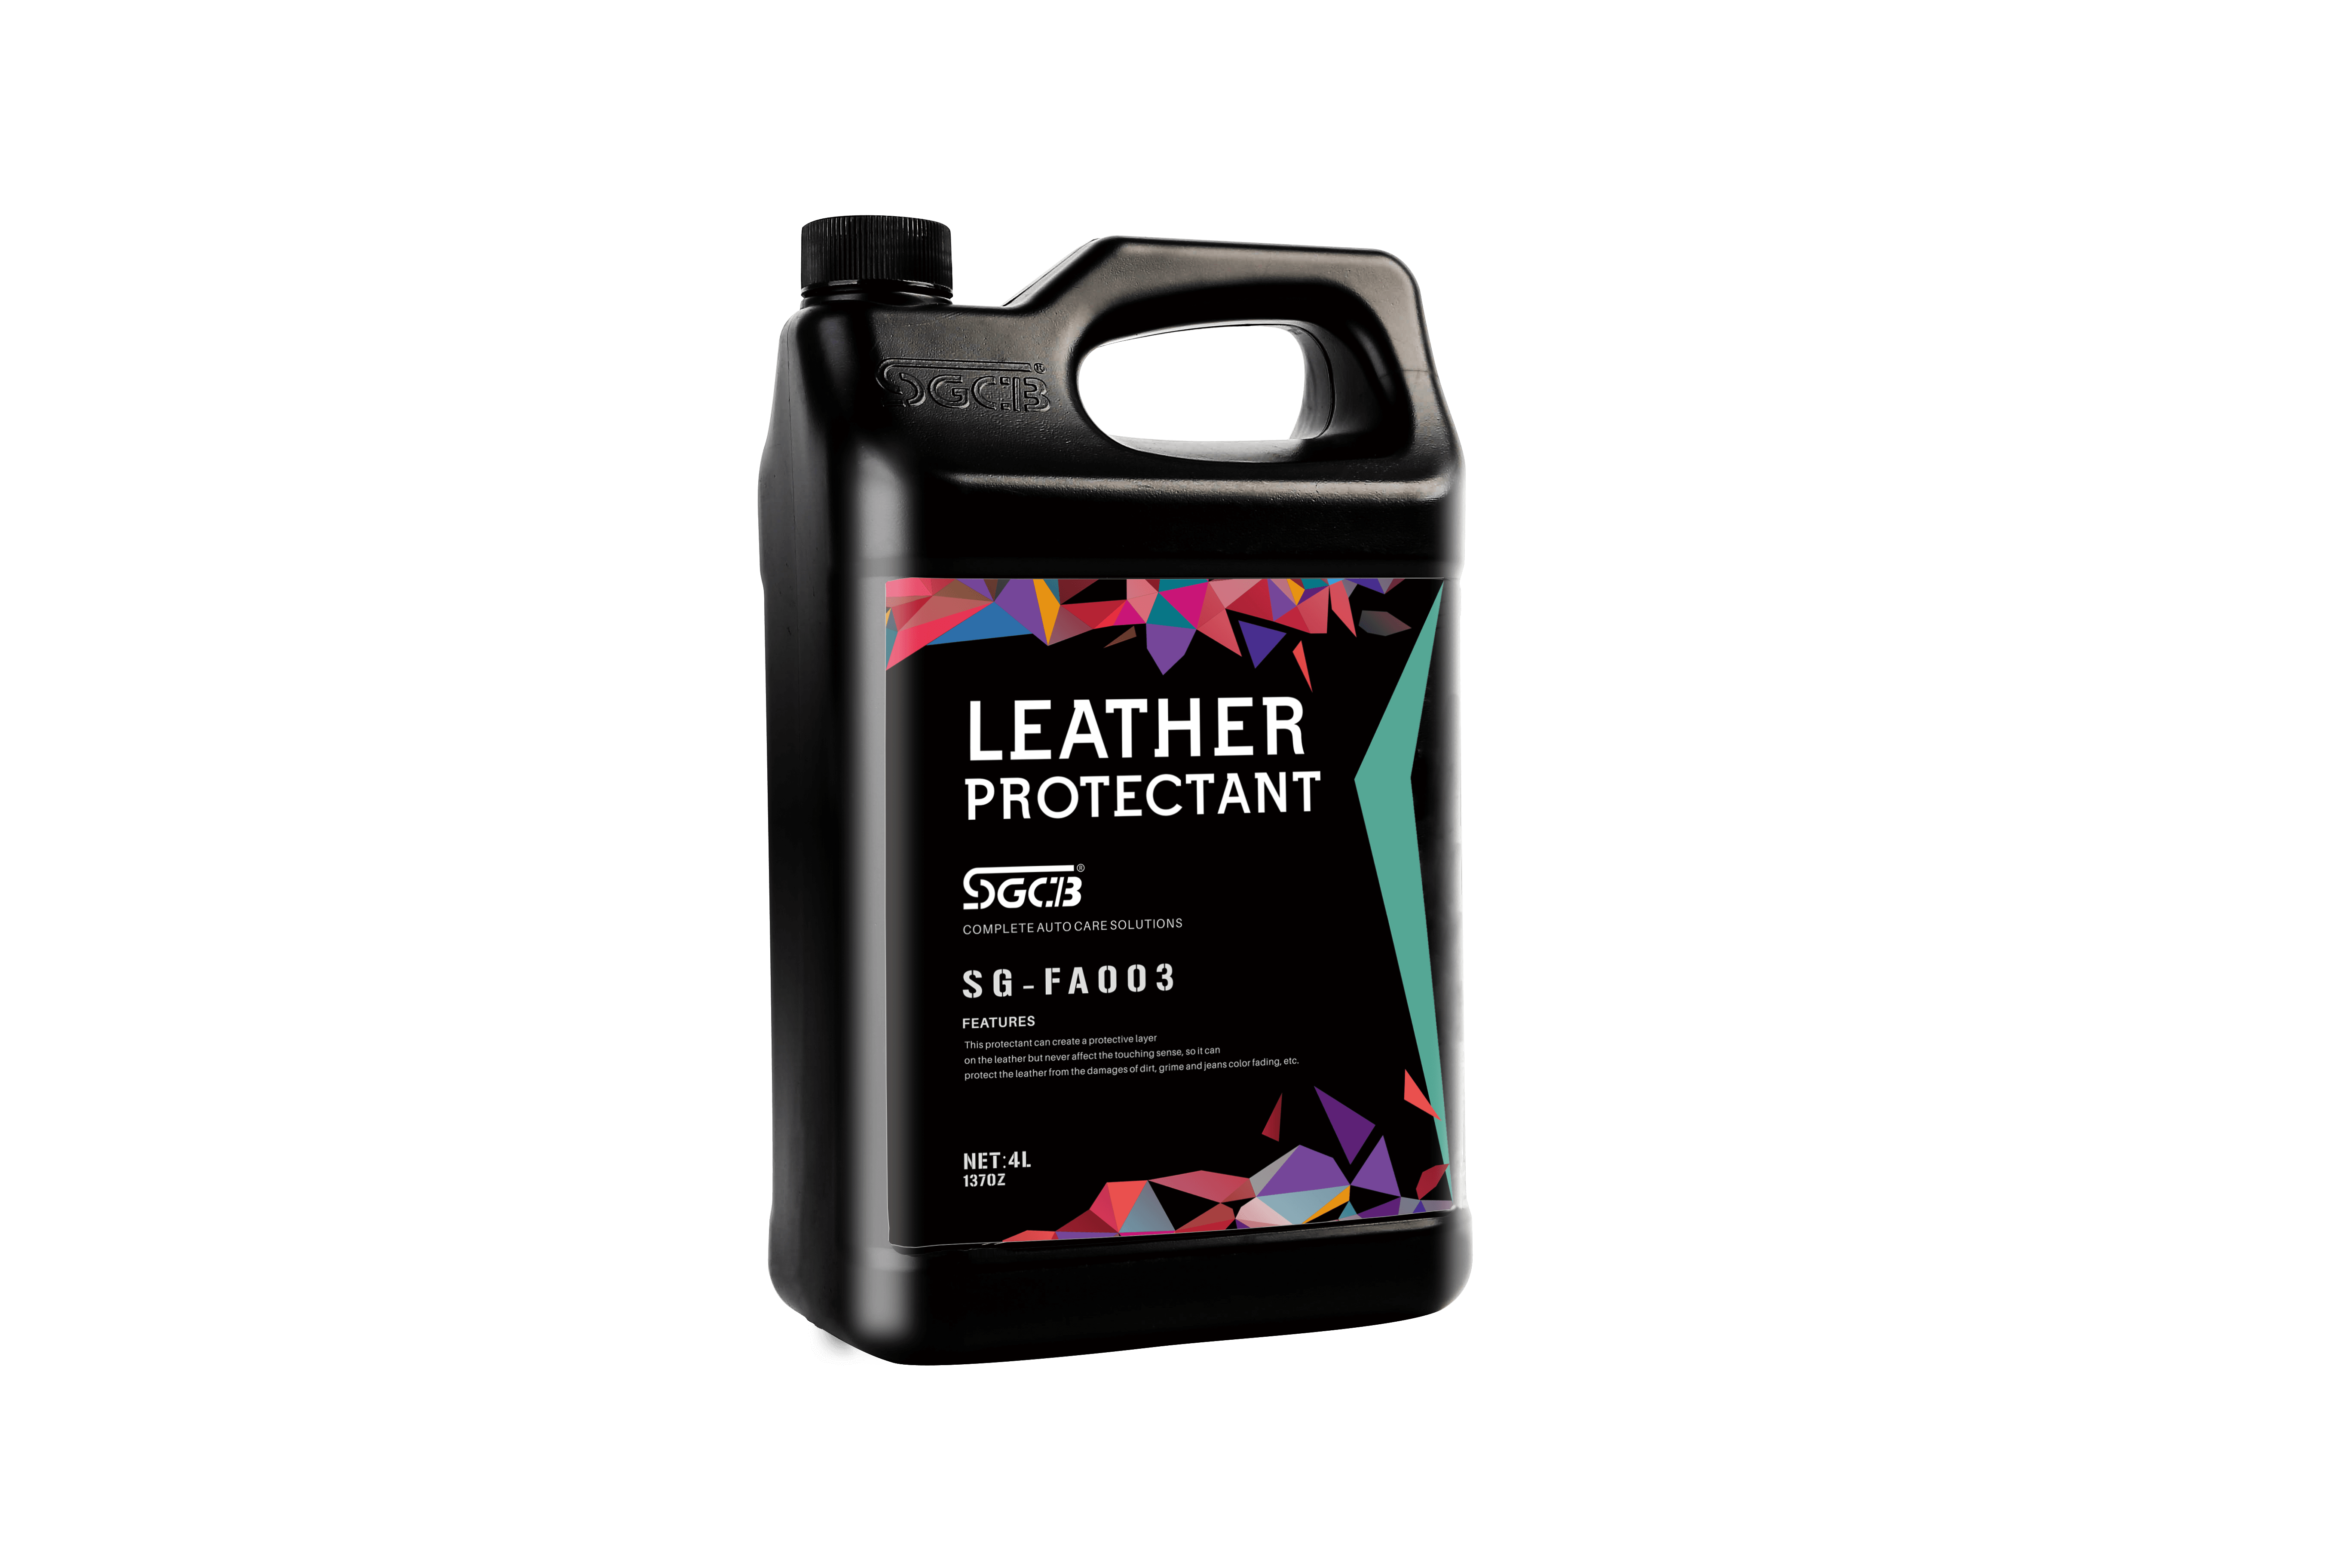 Leather Uv Protectant